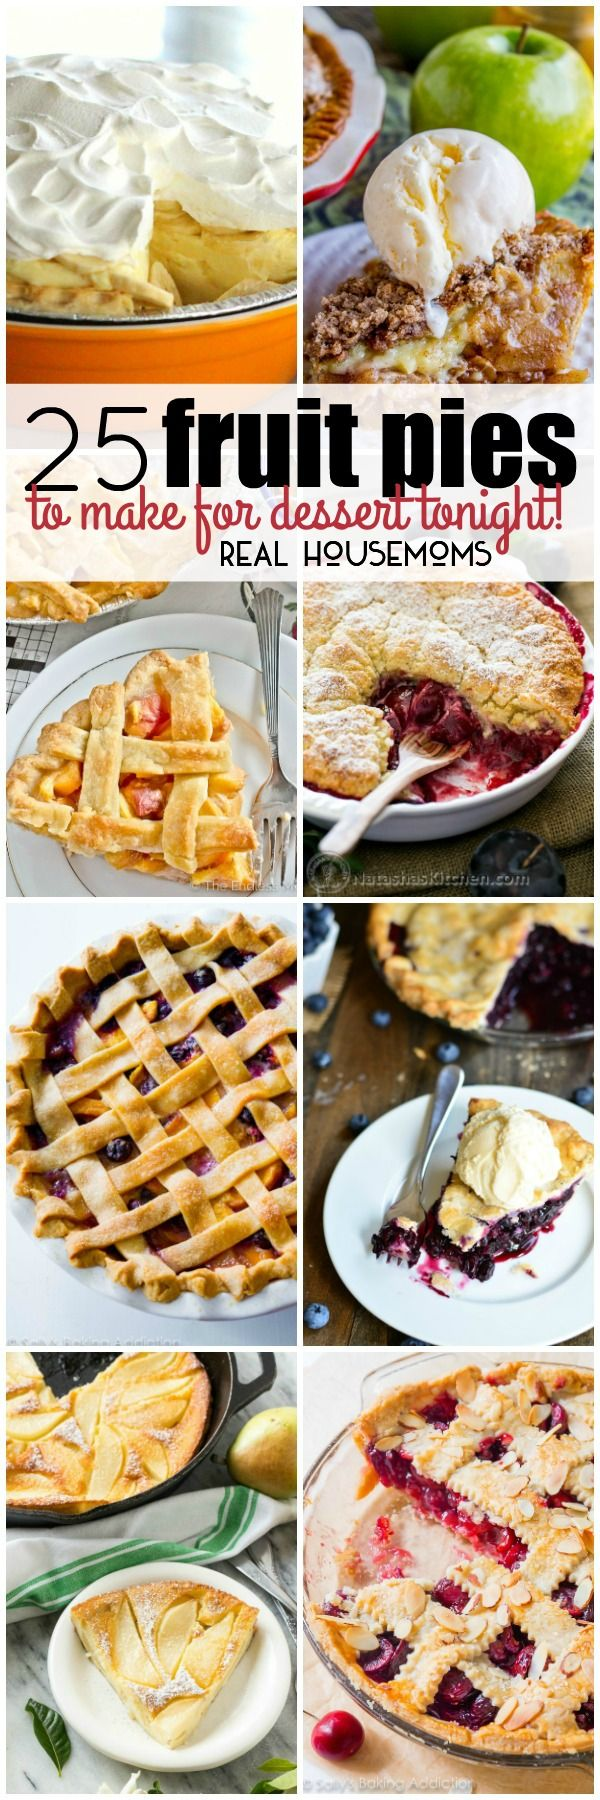 No matter which fruits are your favorite, you'll find a pie to please your palate with these 25 Fruit Pies to Make for Dessert Tonight! via @realhousemoms